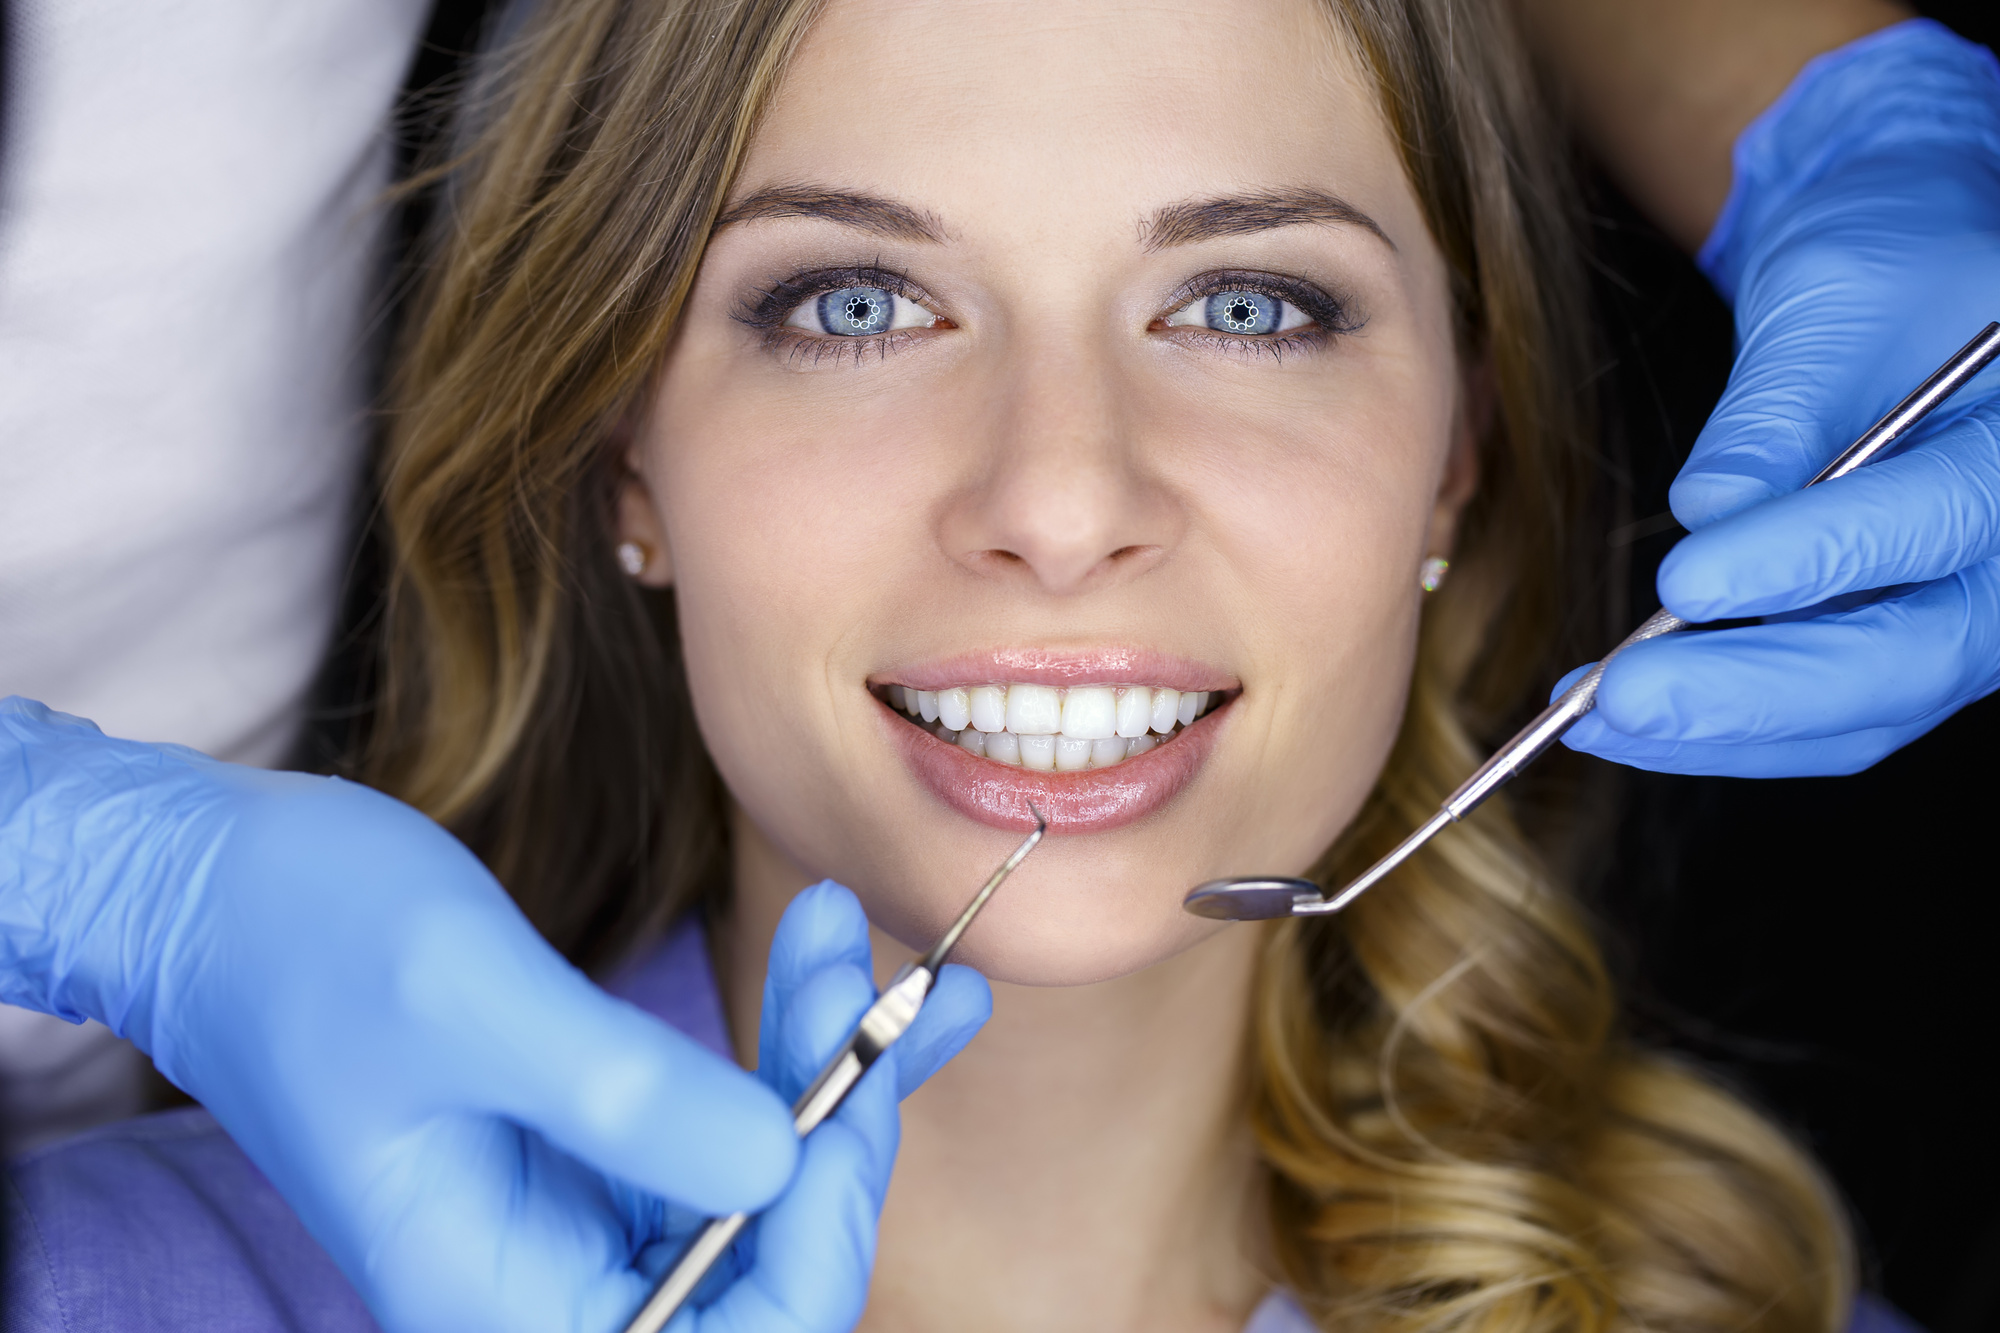 Person Undergoing Dental Procedure